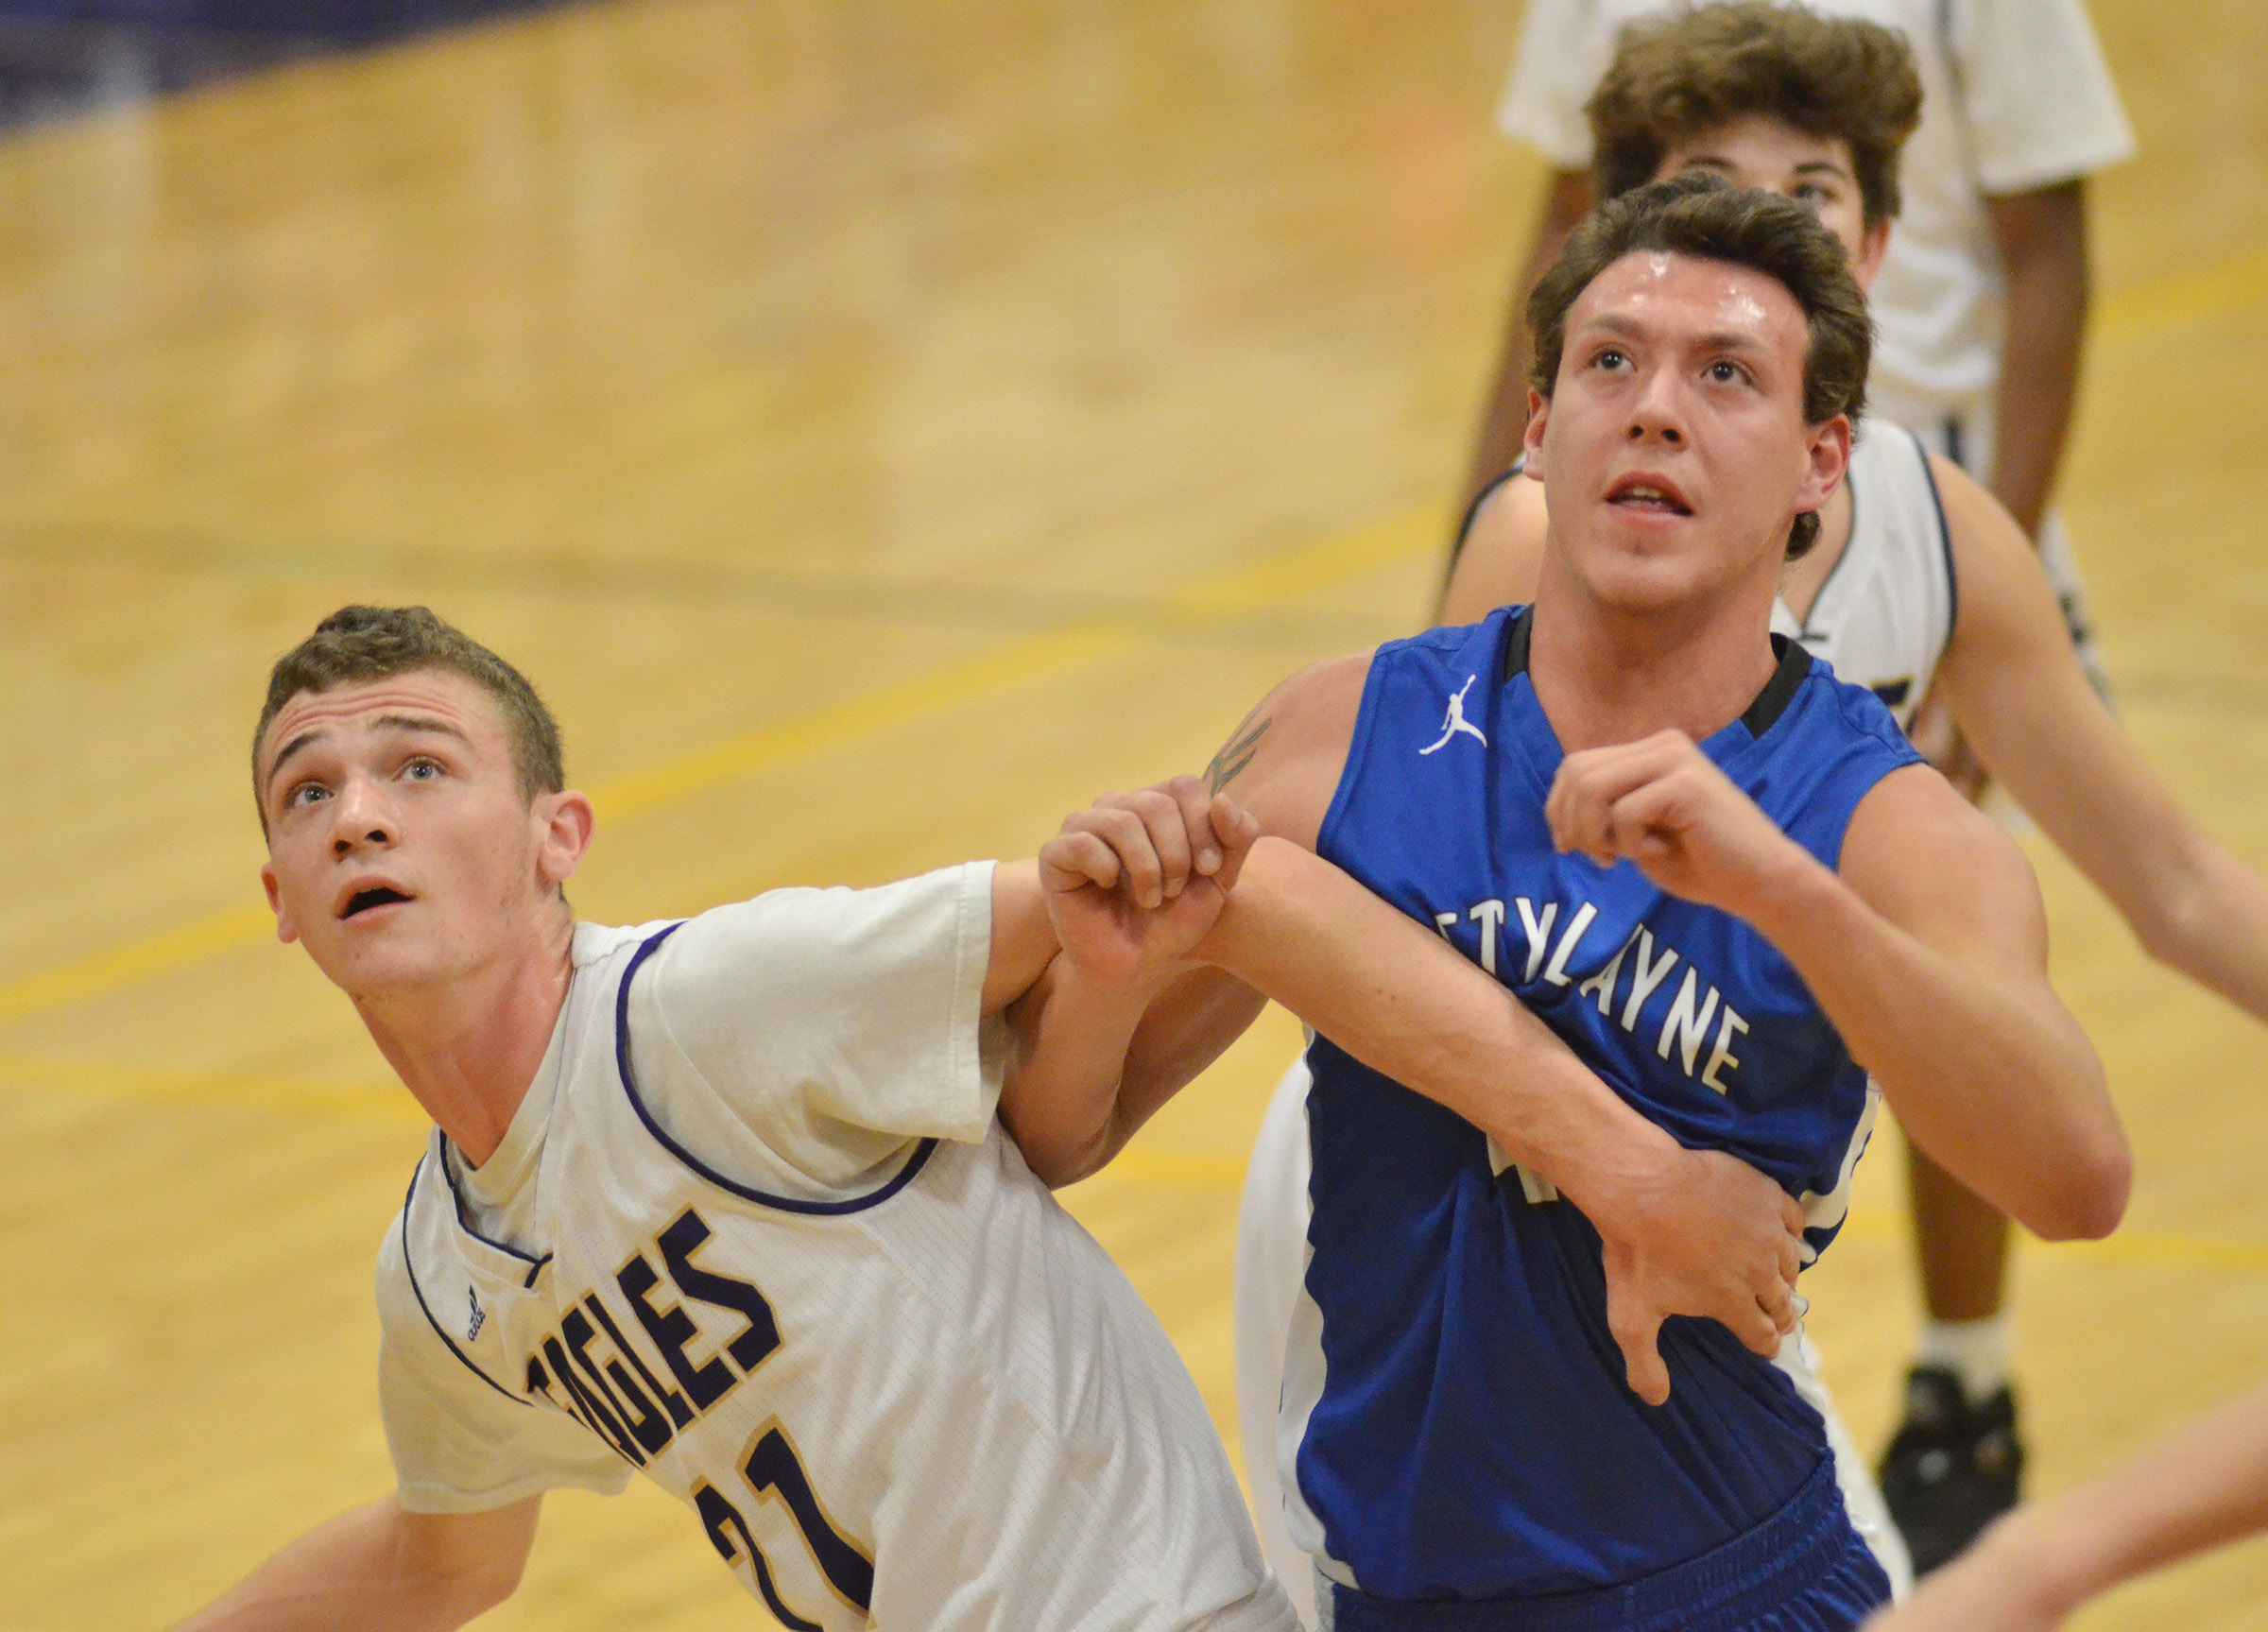 CHS junior Connor Wilson blocks a Betsy Layne defender.